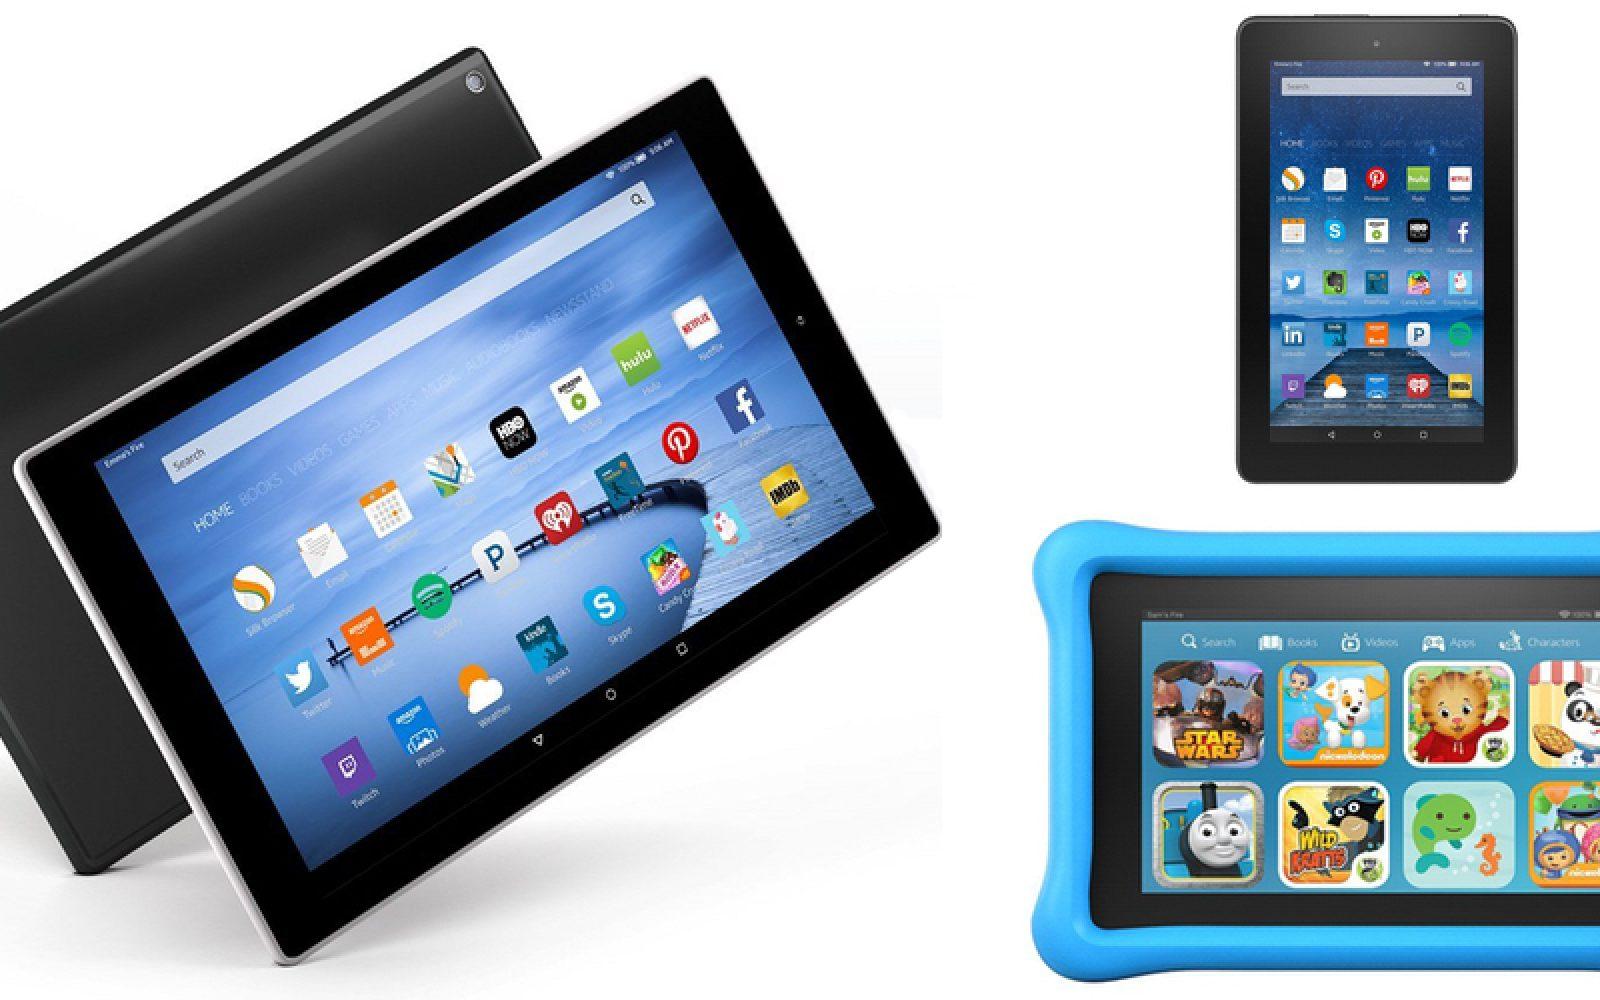 Amazon intros new $50 budget-friendly 7-inch Kindle Fire and